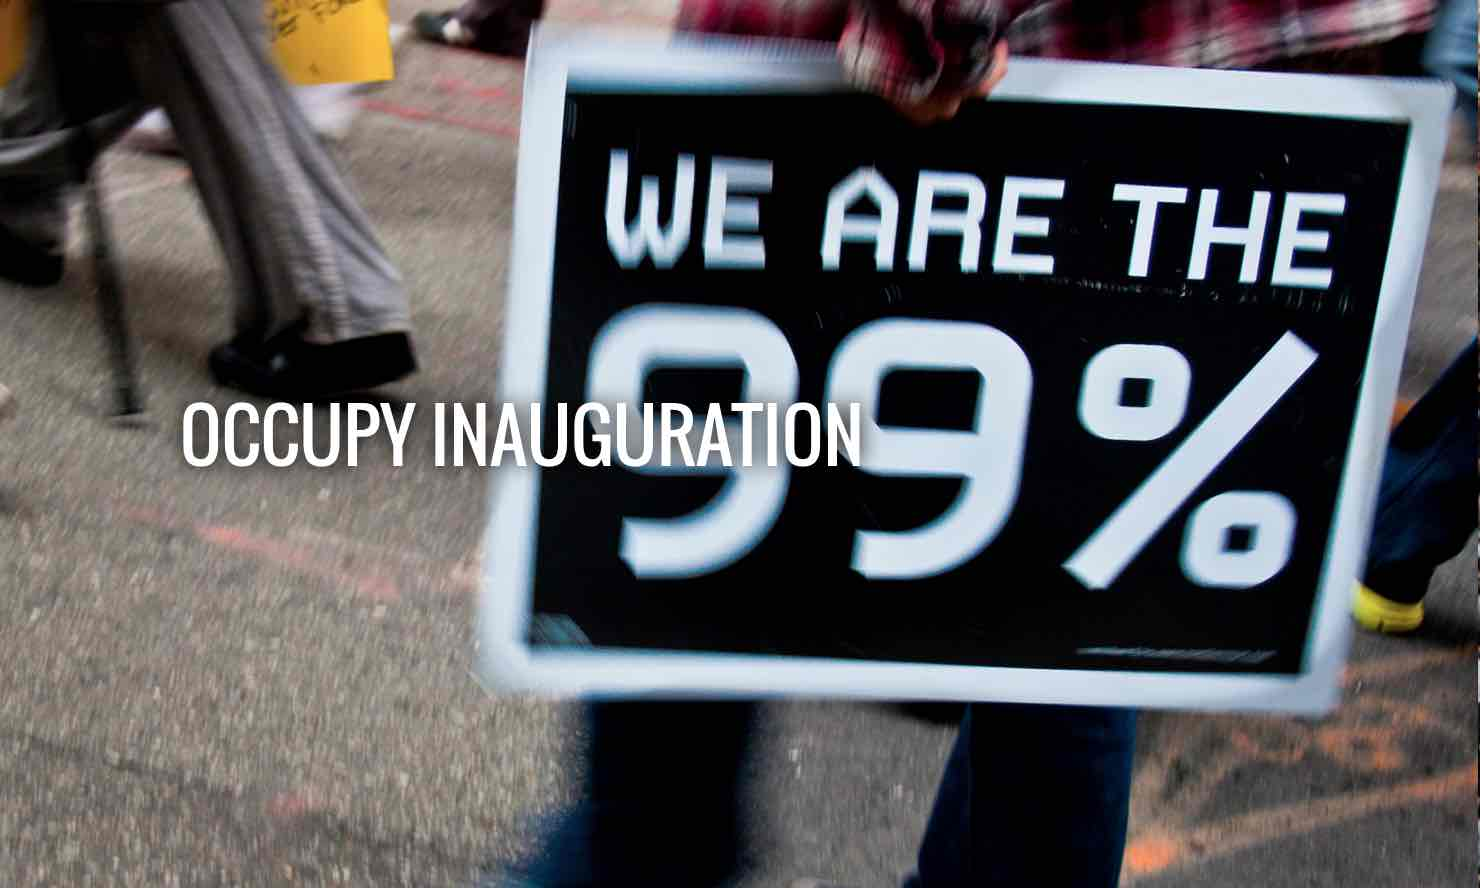 occupyinauguration.jpg